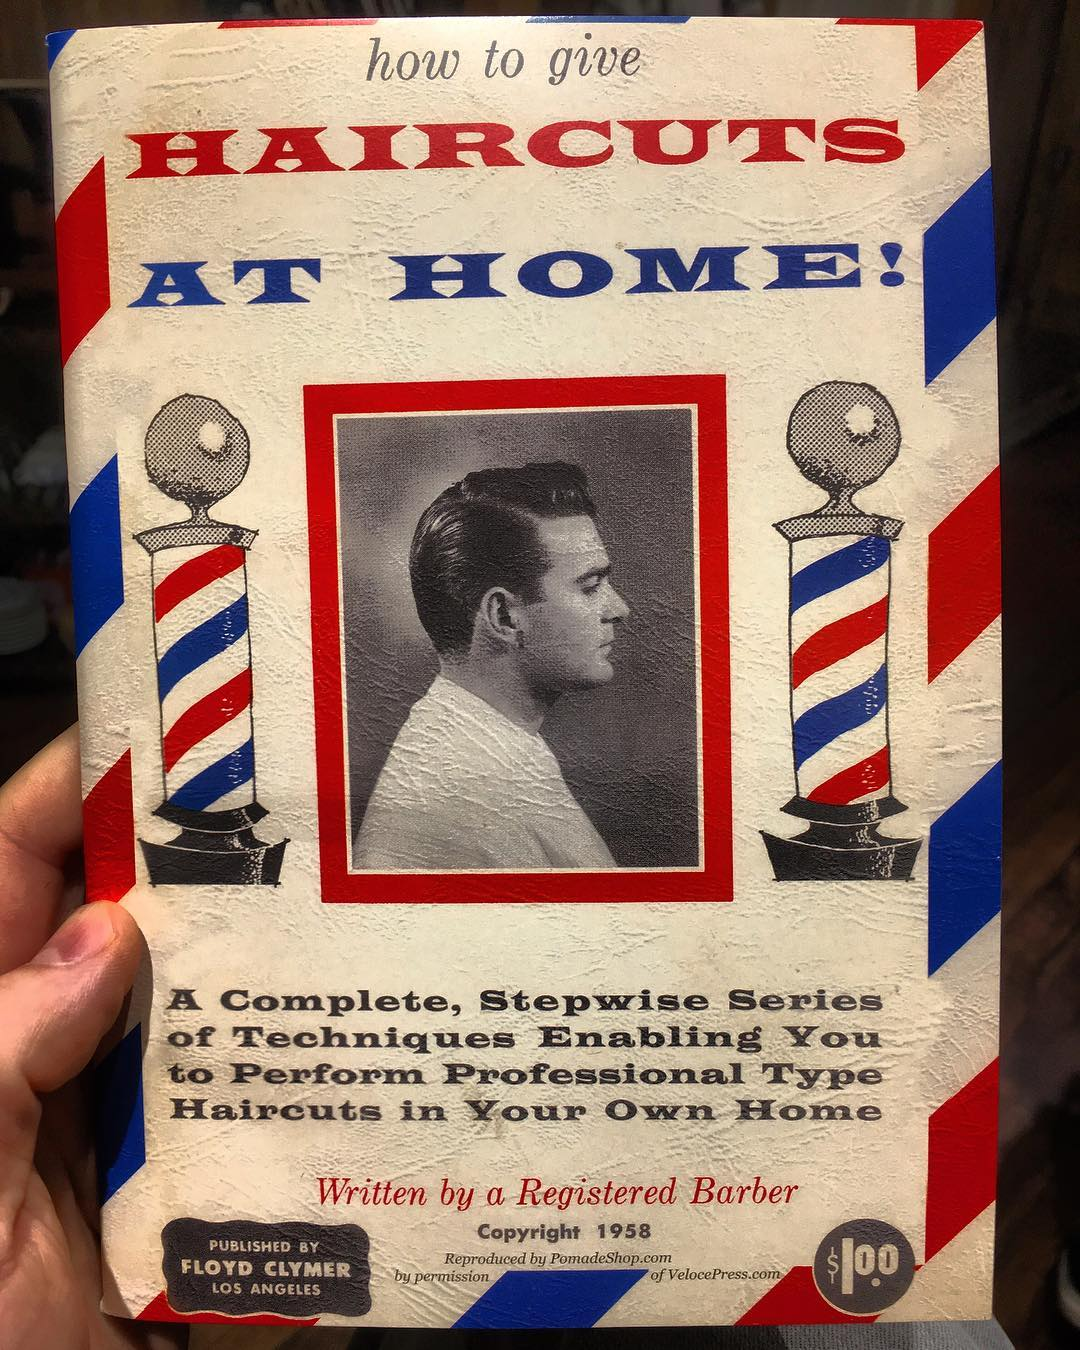 A very cool vintage barbershop book from Germany 🇩🇪. Thanks @abravintage for the great gift . Love it bro . Open all day from 11:30 to 19:00 . Walk-in's or booking appointment